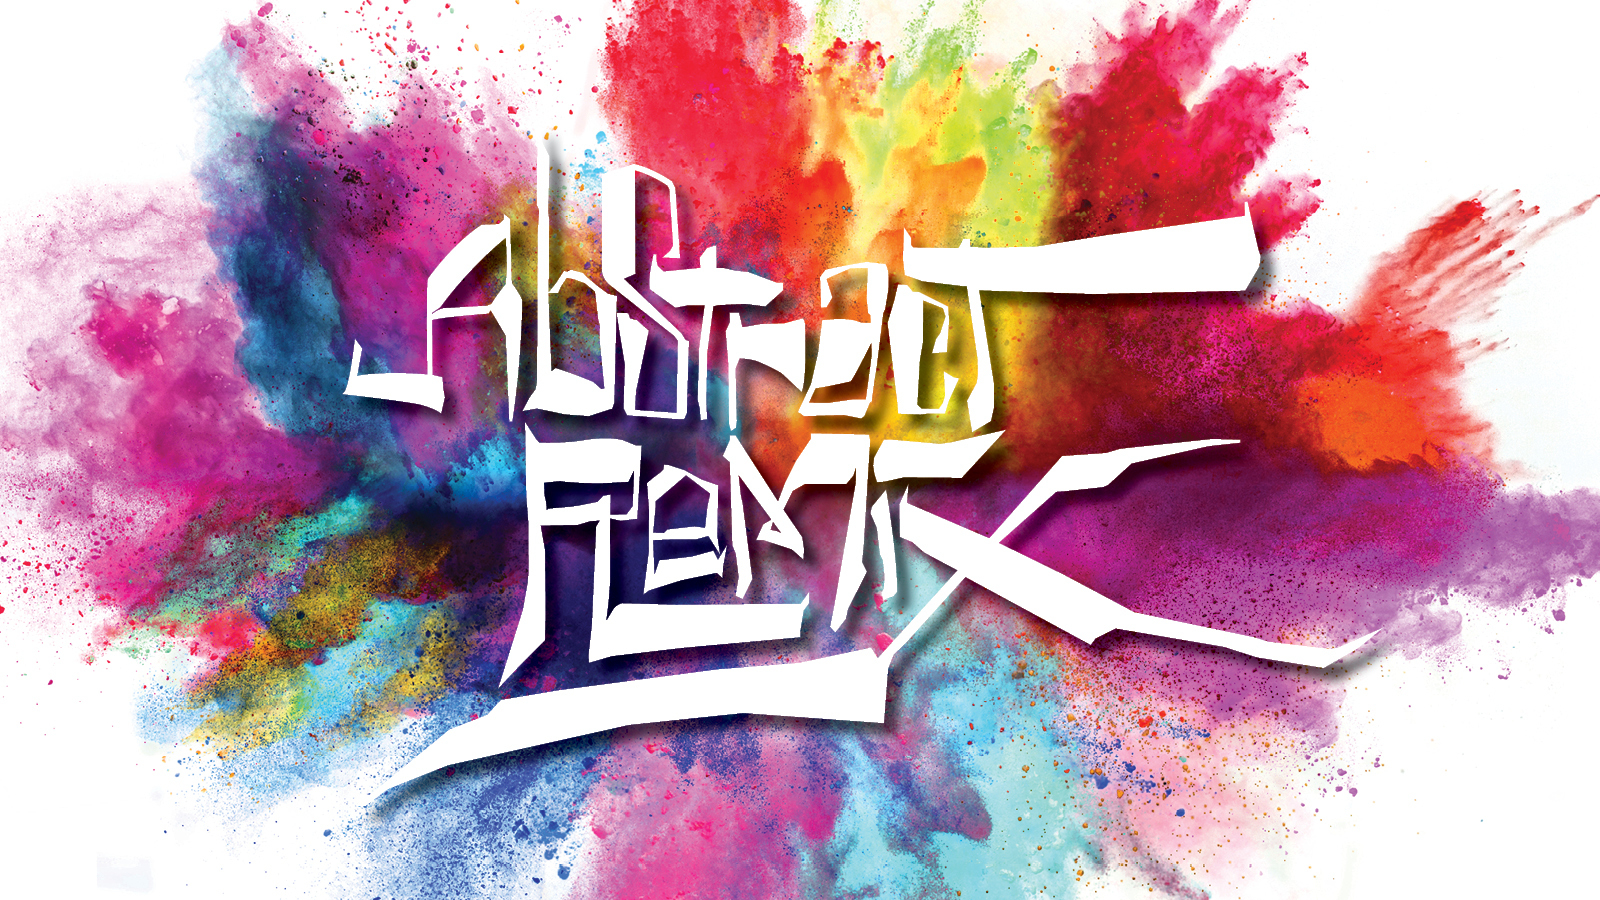 Logo for Abstract Remix with color splash behind it